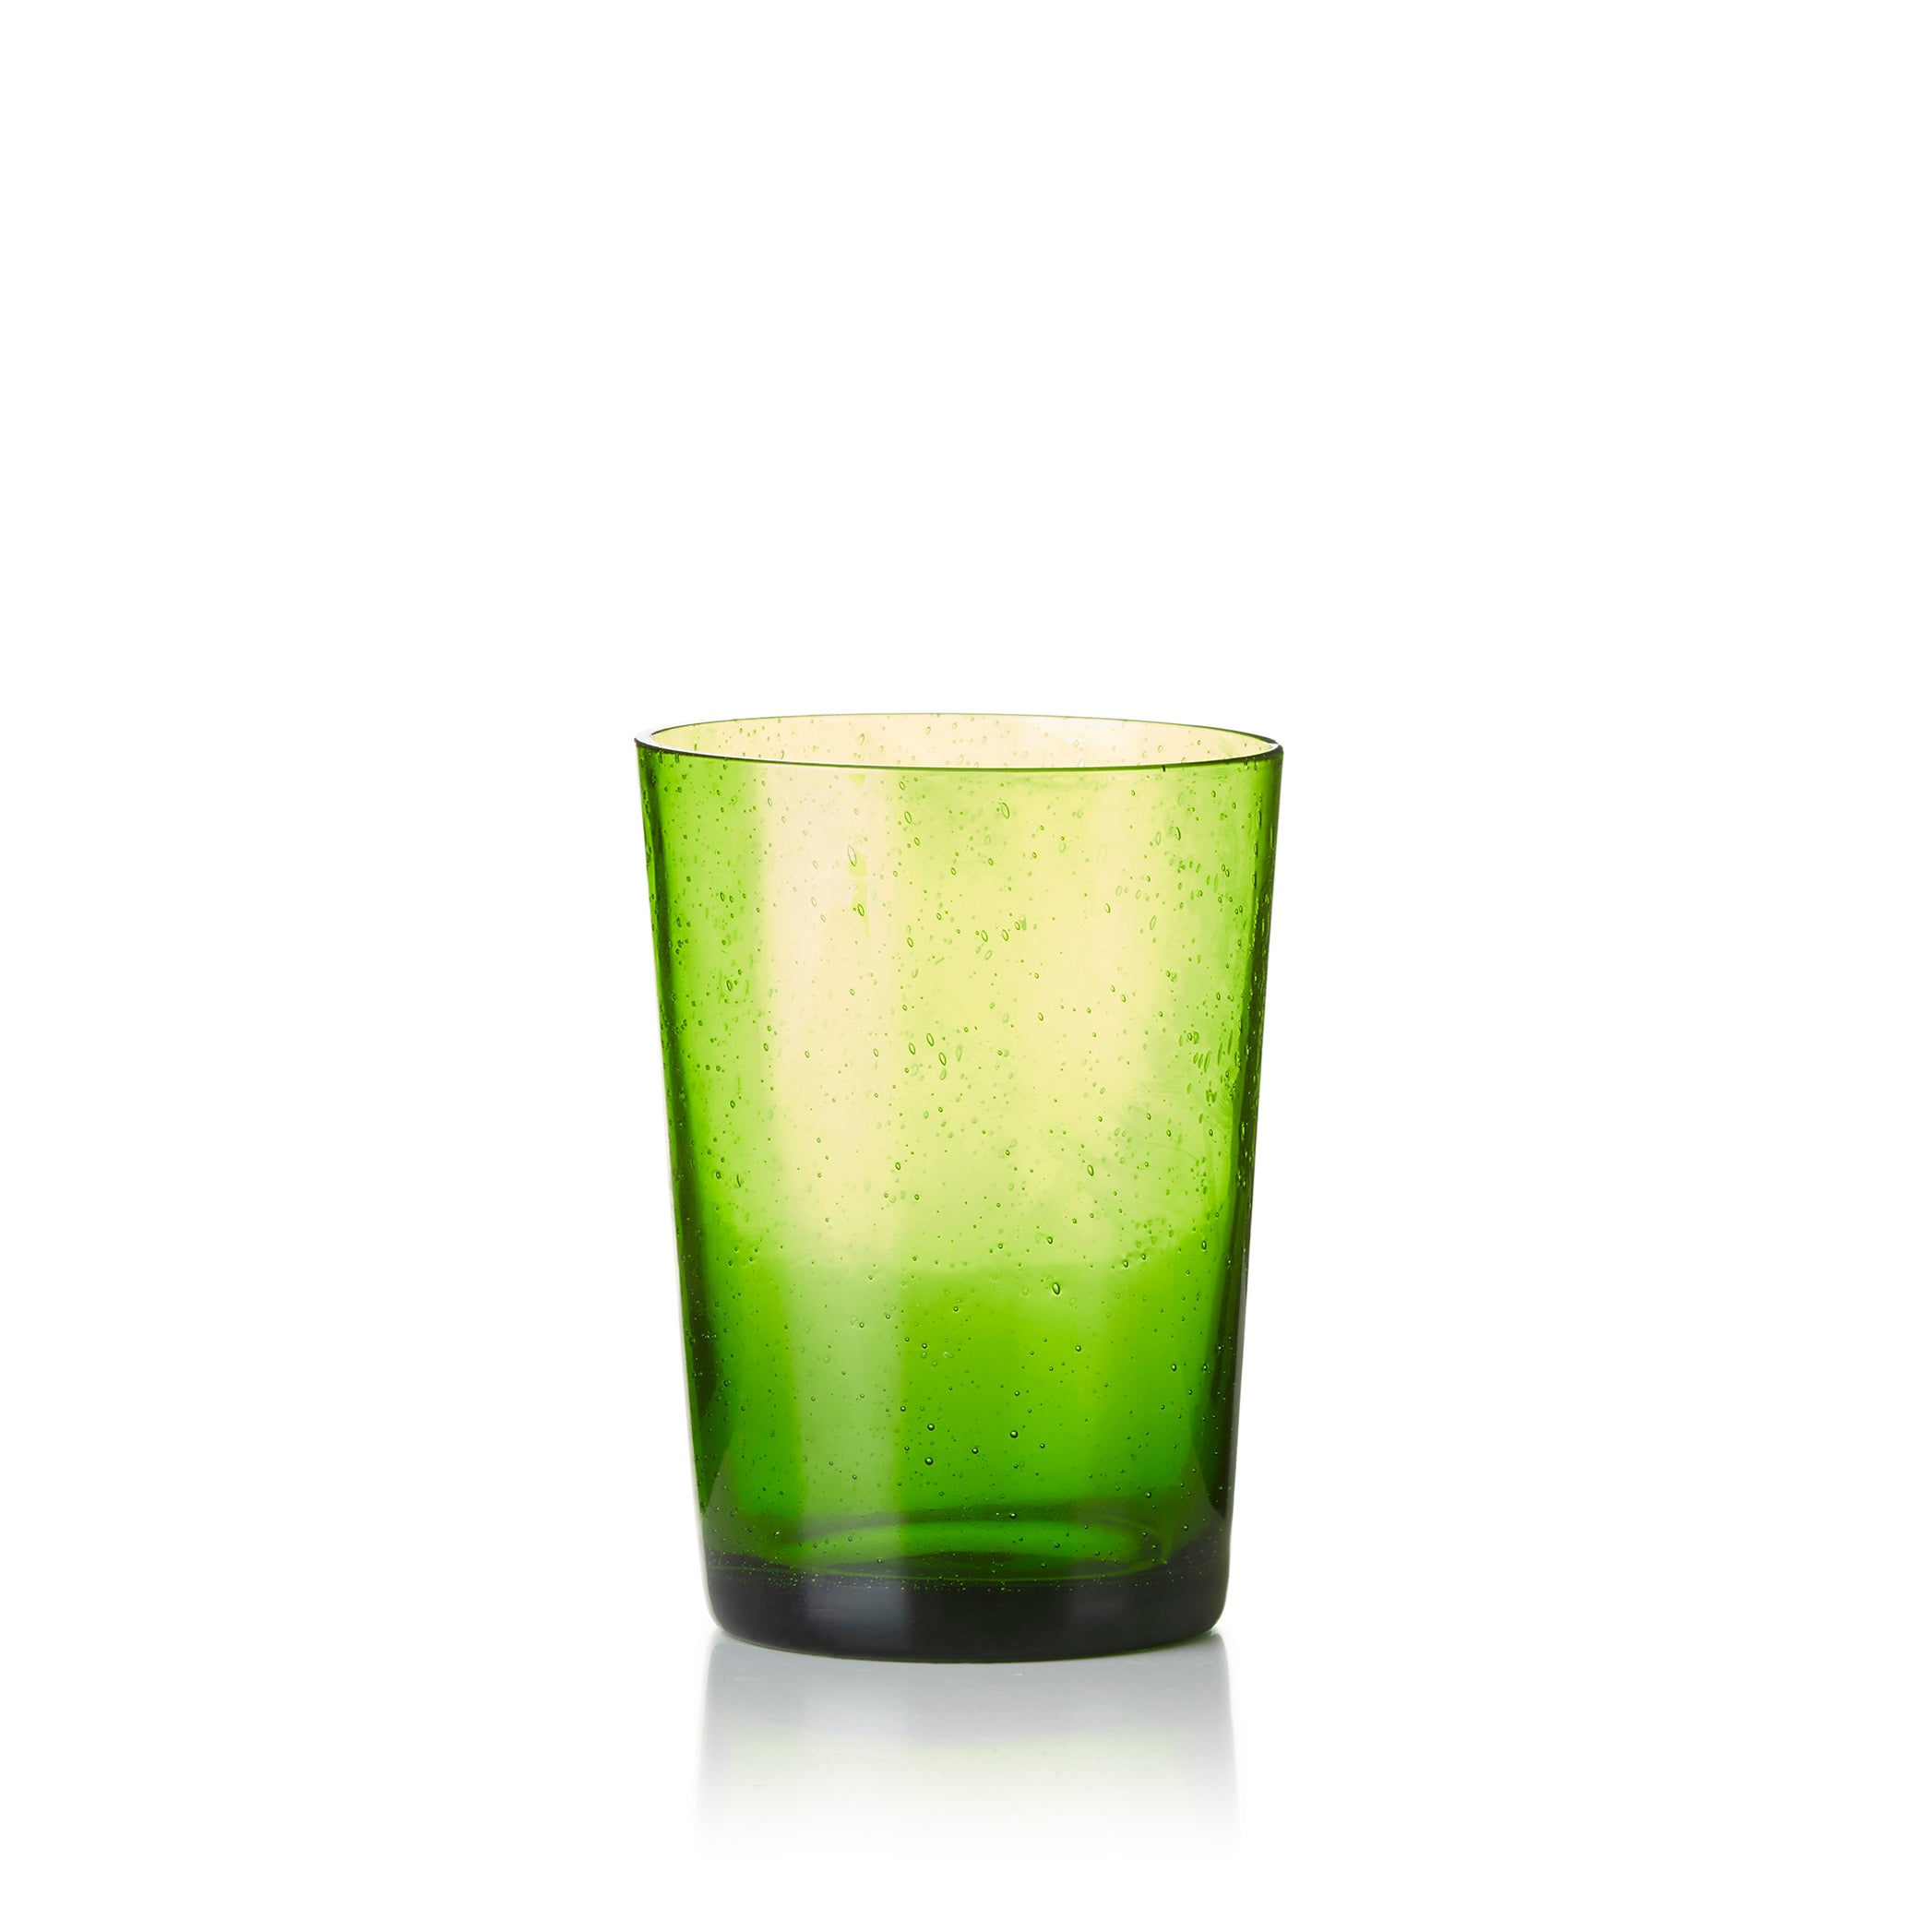 Handmade Glass Tumbler in Green